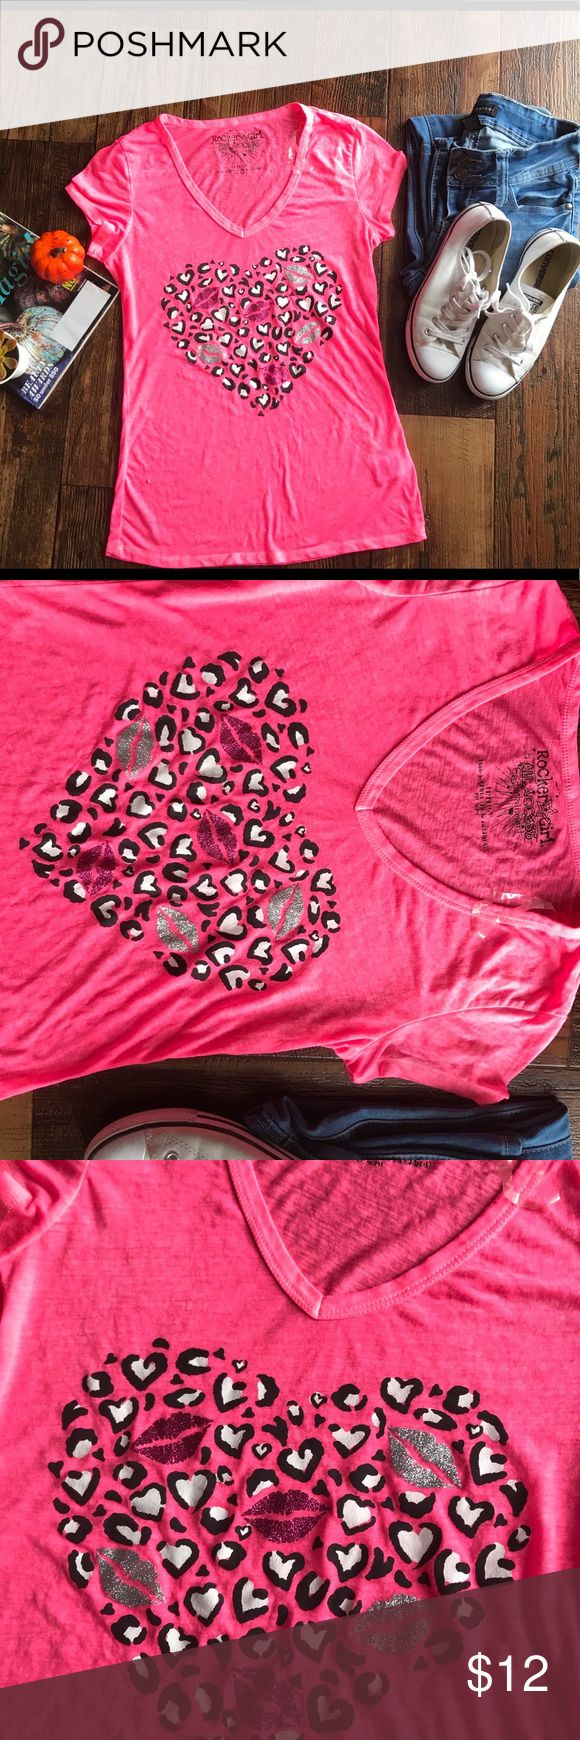 Medium Pink kisses 😘 leopard print sheer top In gently used condition Sheer style Top with cute print. Casual Wear Size M by Rocker Girl All Access Entertainment Size 7/9 Woman rocker girl Tops Tees - Short Sleeve